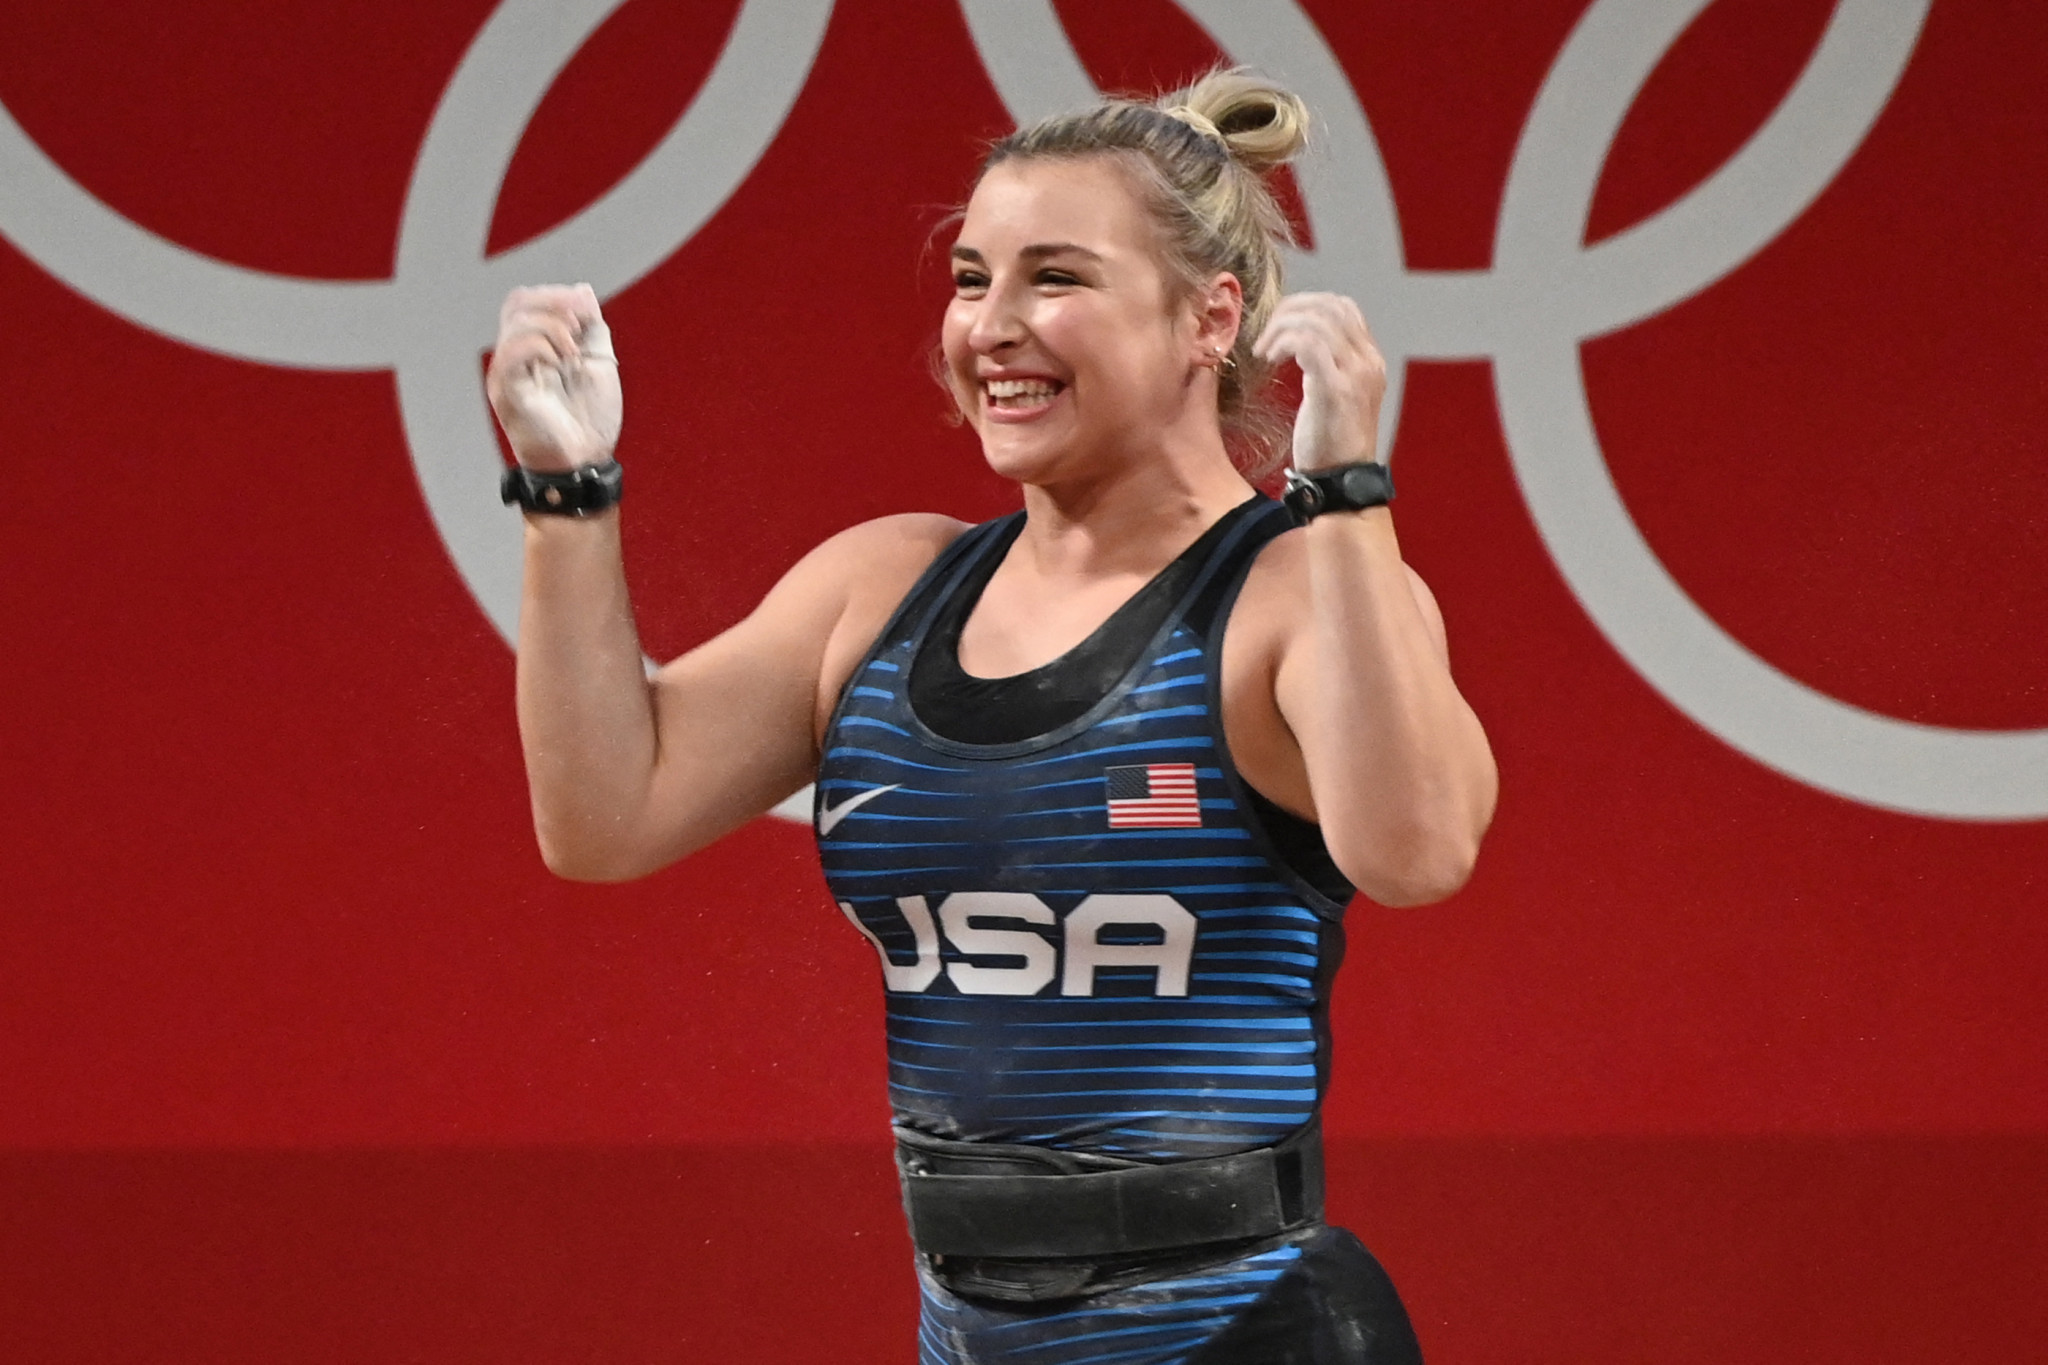 Kate Nye, who suffers from bipolar disorder, earned a silver medal in the 76kg weightlifting category at the Tokyo 2020 Olympics ©Getty Images